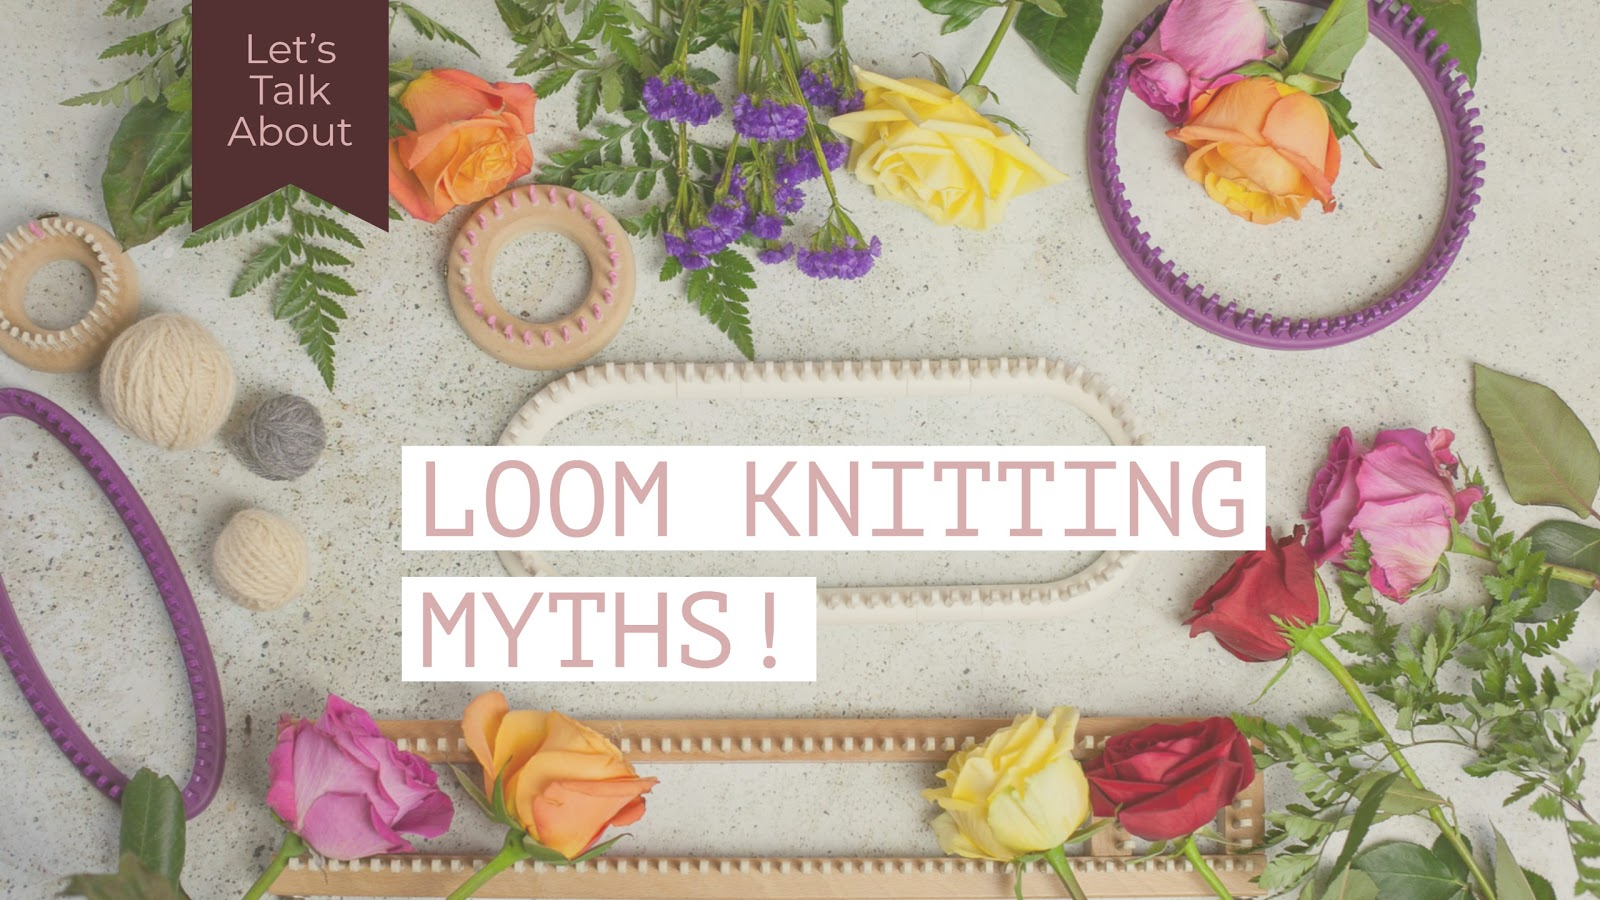 Common Myths In Loom Knitting! | Loom Knitting by This Moment is Good!